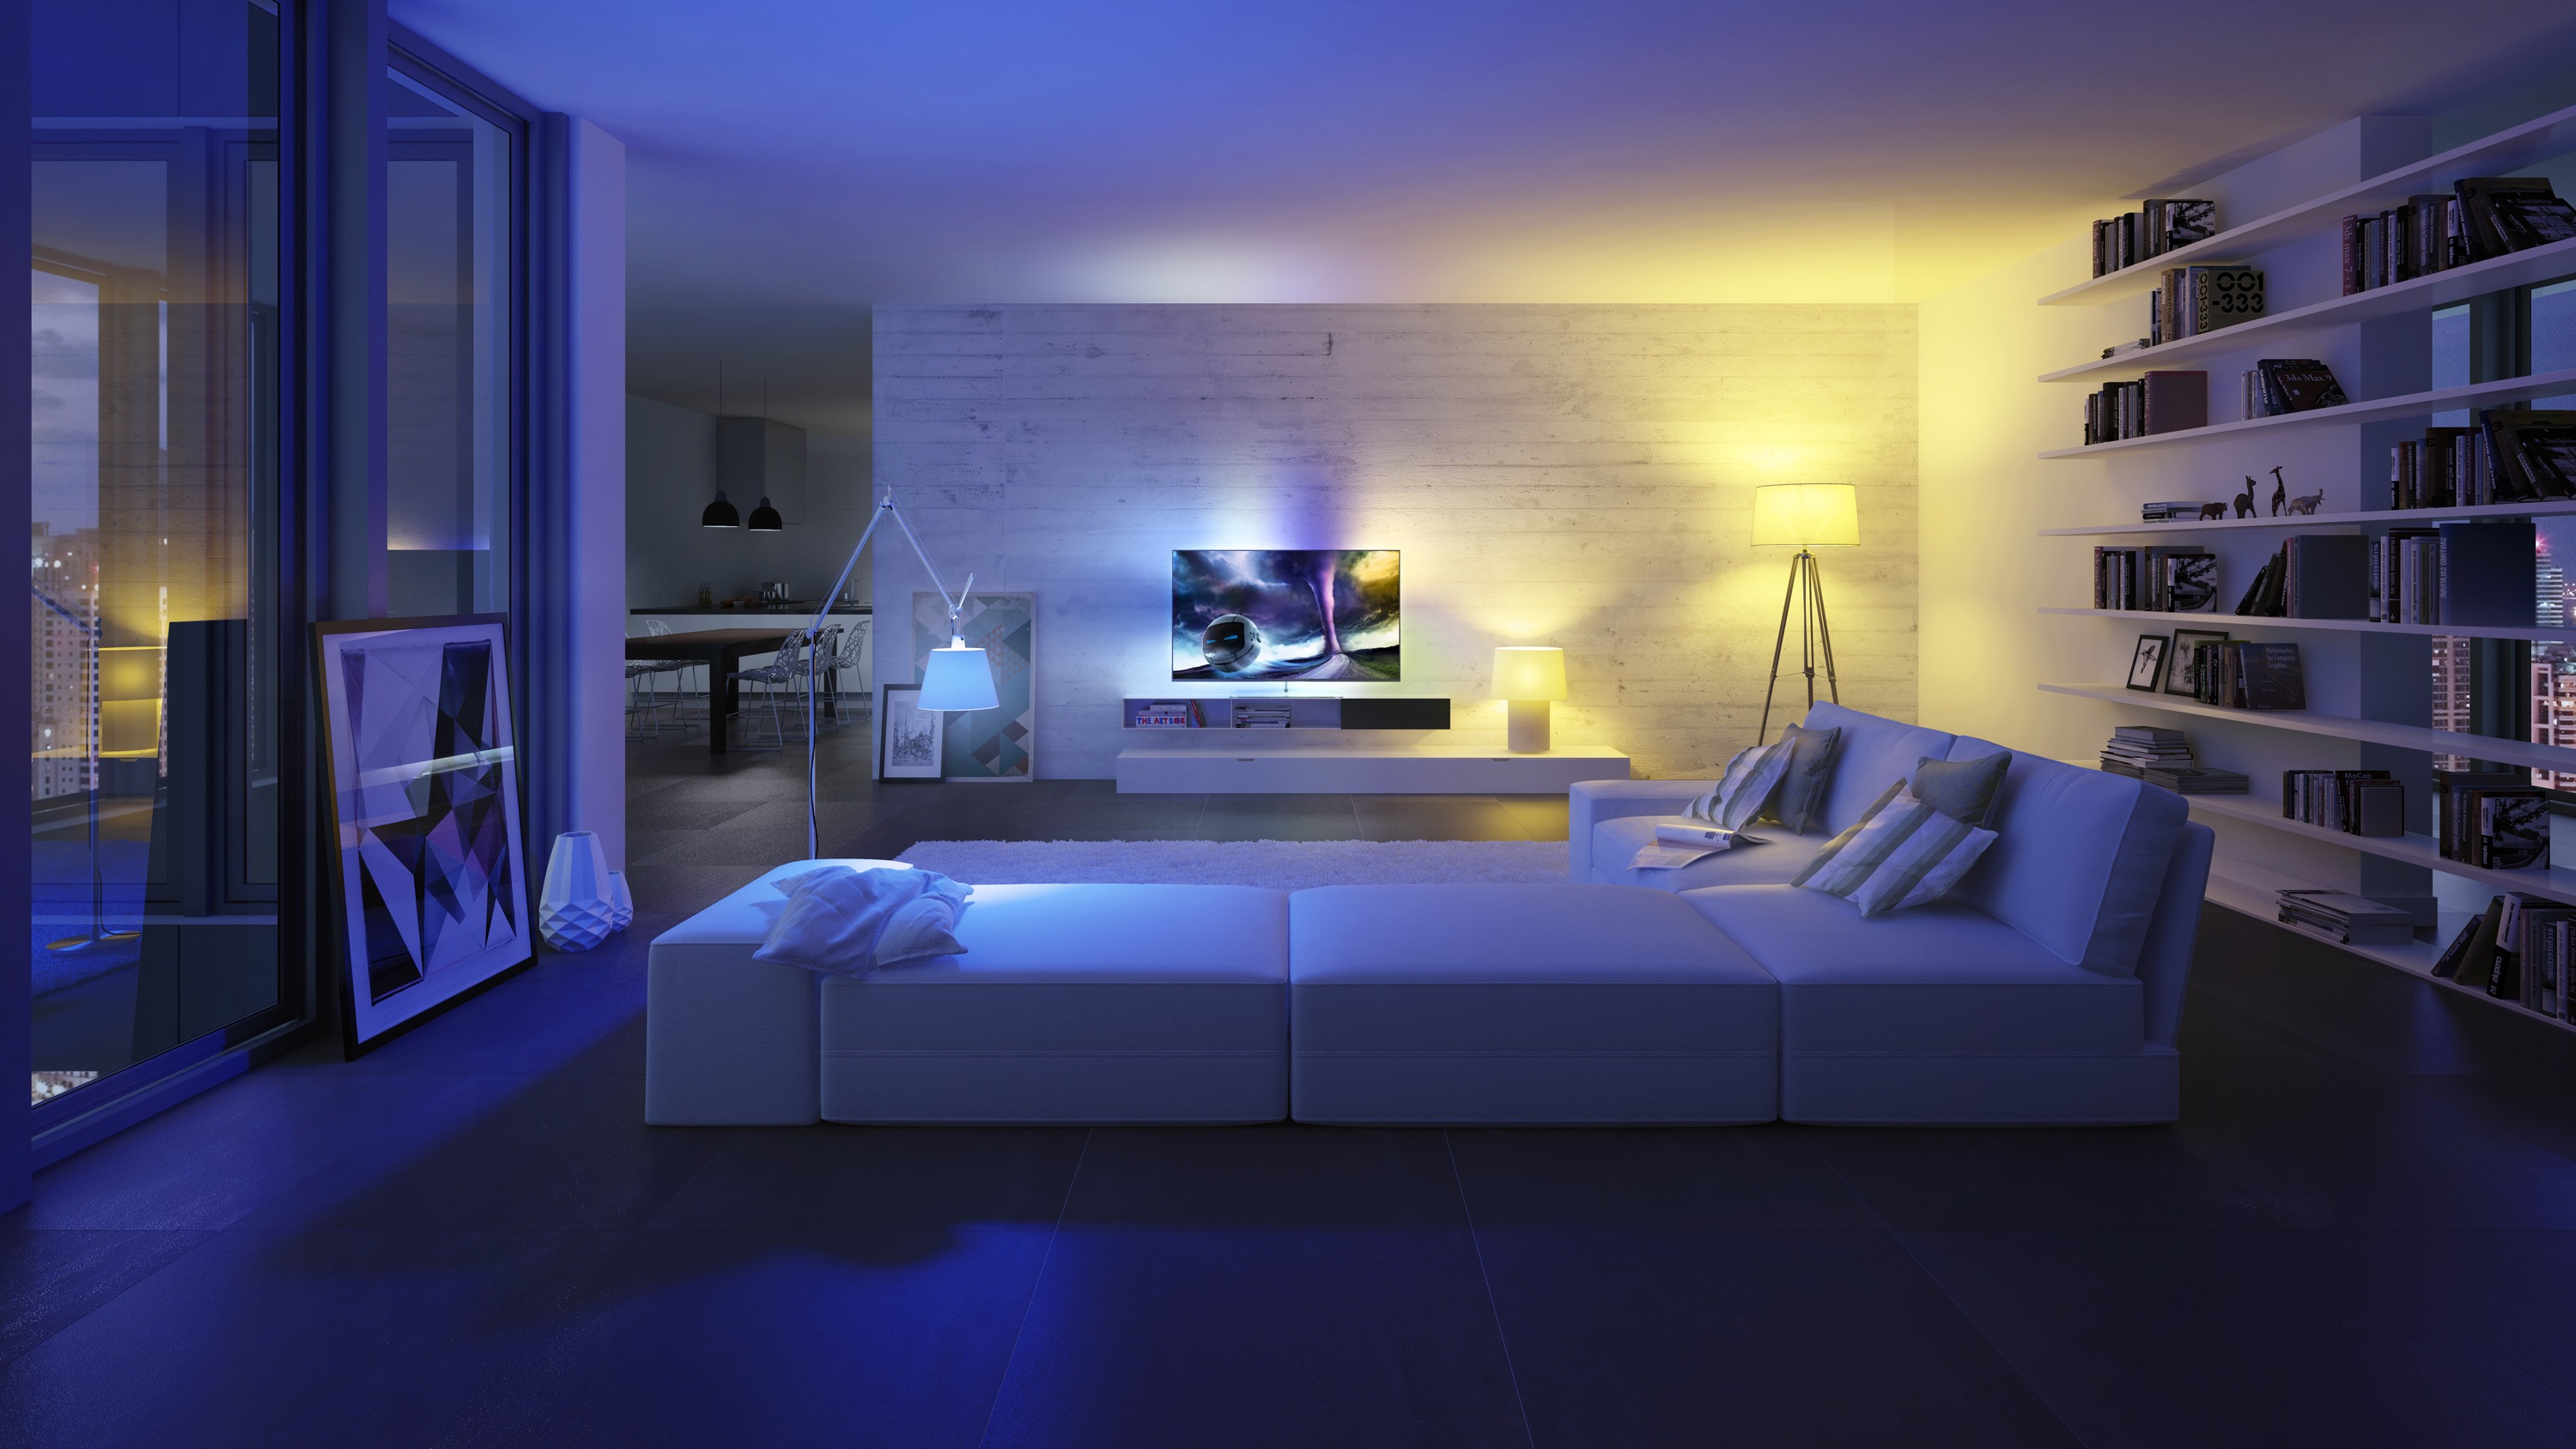 philips hue uk guide everything you need to know live smart. Black Bedroom Furniture Sets. Home Design Ideas